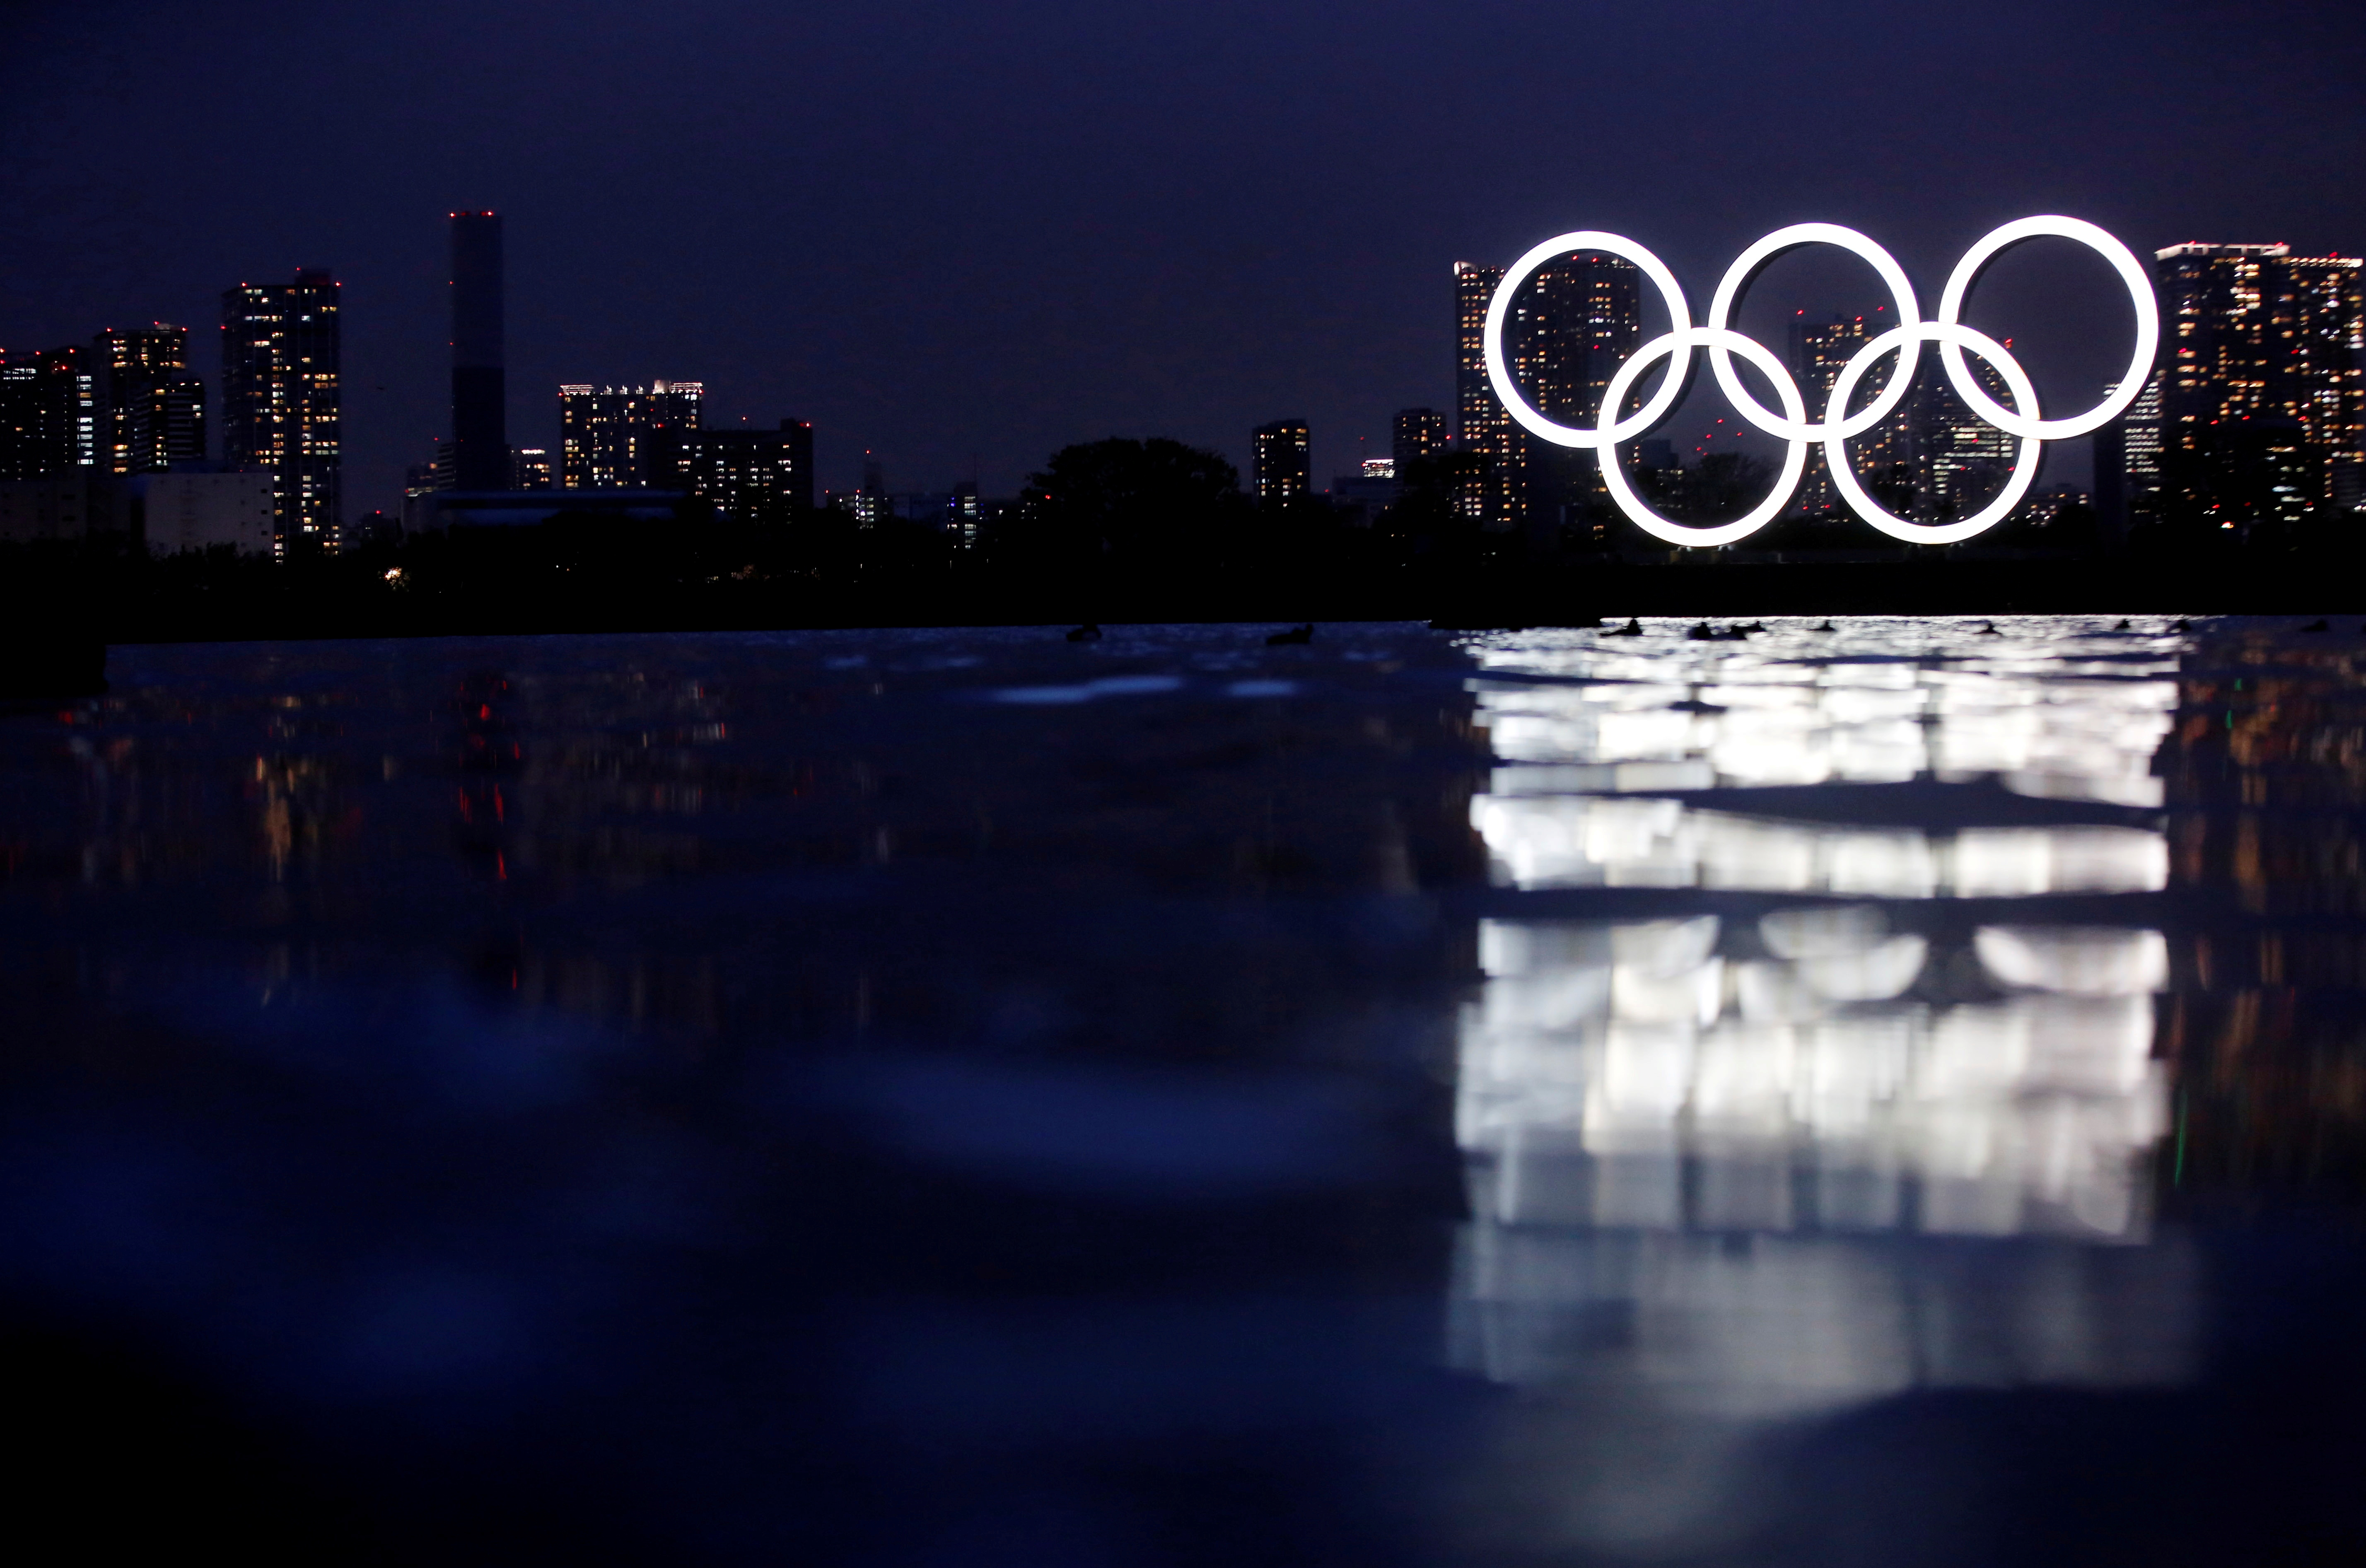 An Olympic rings monument is pictured in the waterfront area at Odaiba Marine Park in Tokyo, Japan, April 2, 2021. Picture taken April 2, 2021.  REUTERS/Kim Kyung-Hoon/File Photo